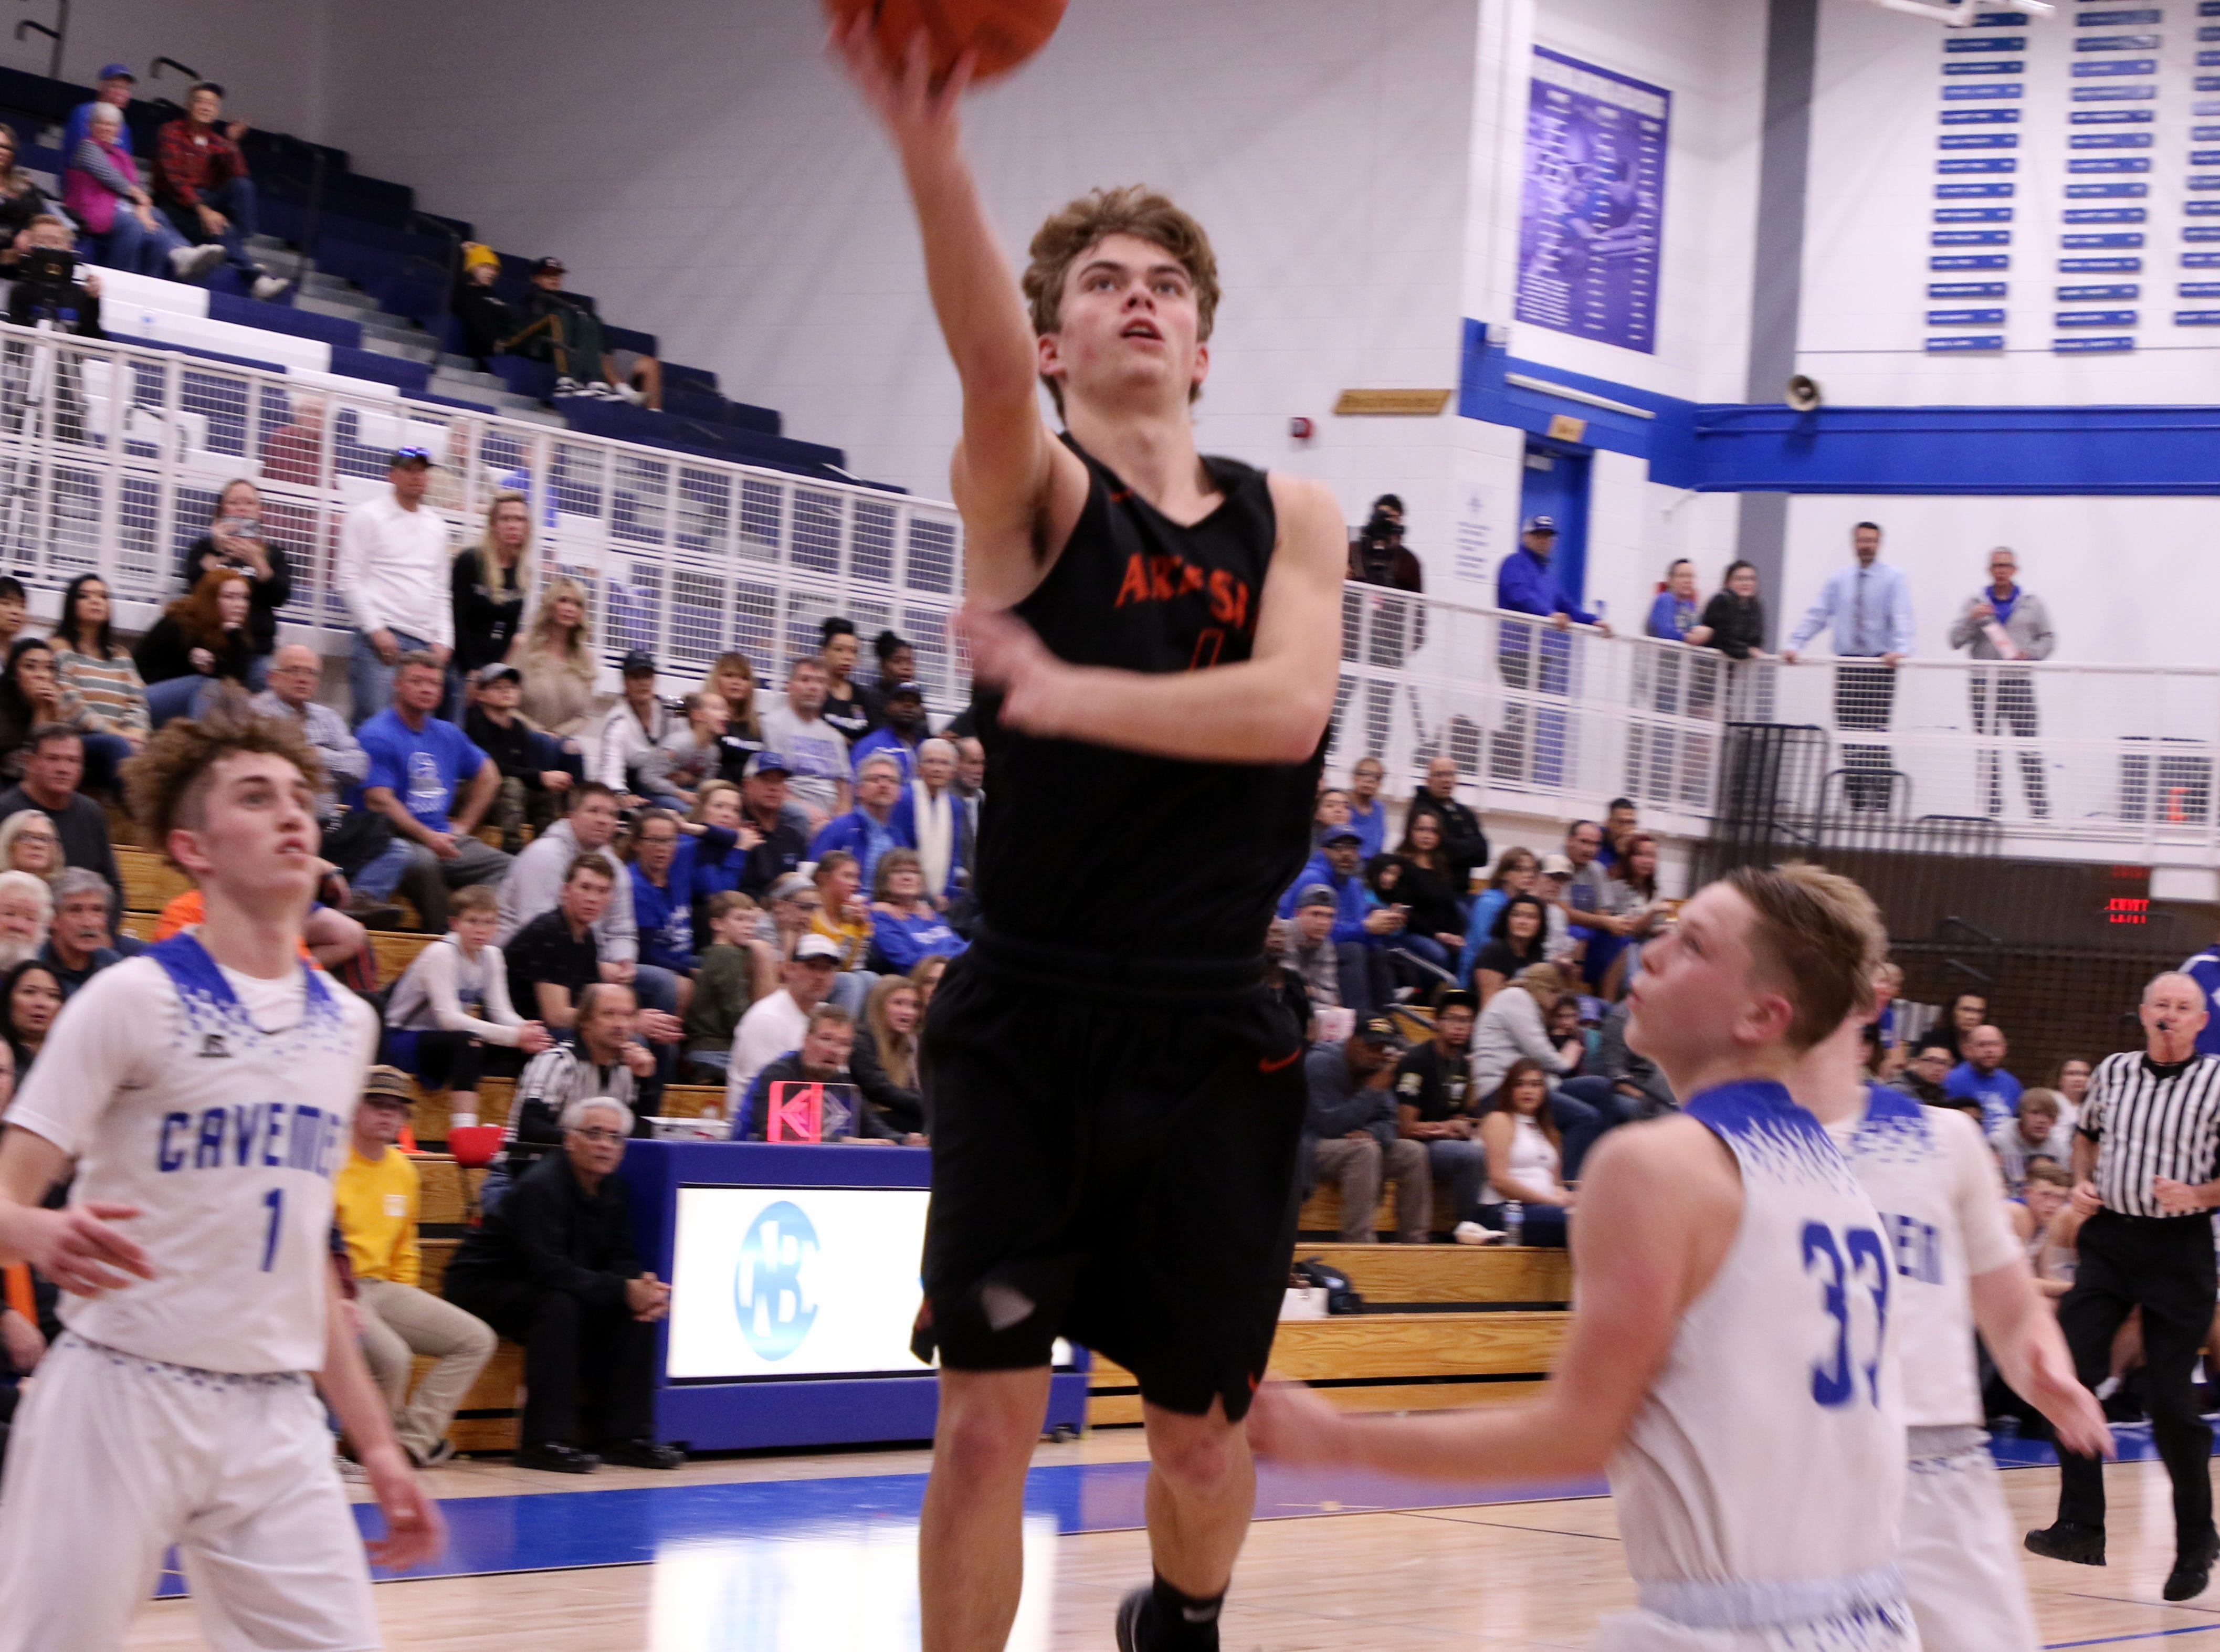 Kale Mauritsen (4) goes for a layup against Carlsbad during Tuesday's game. Mauritsen led Artesia with 17 points.